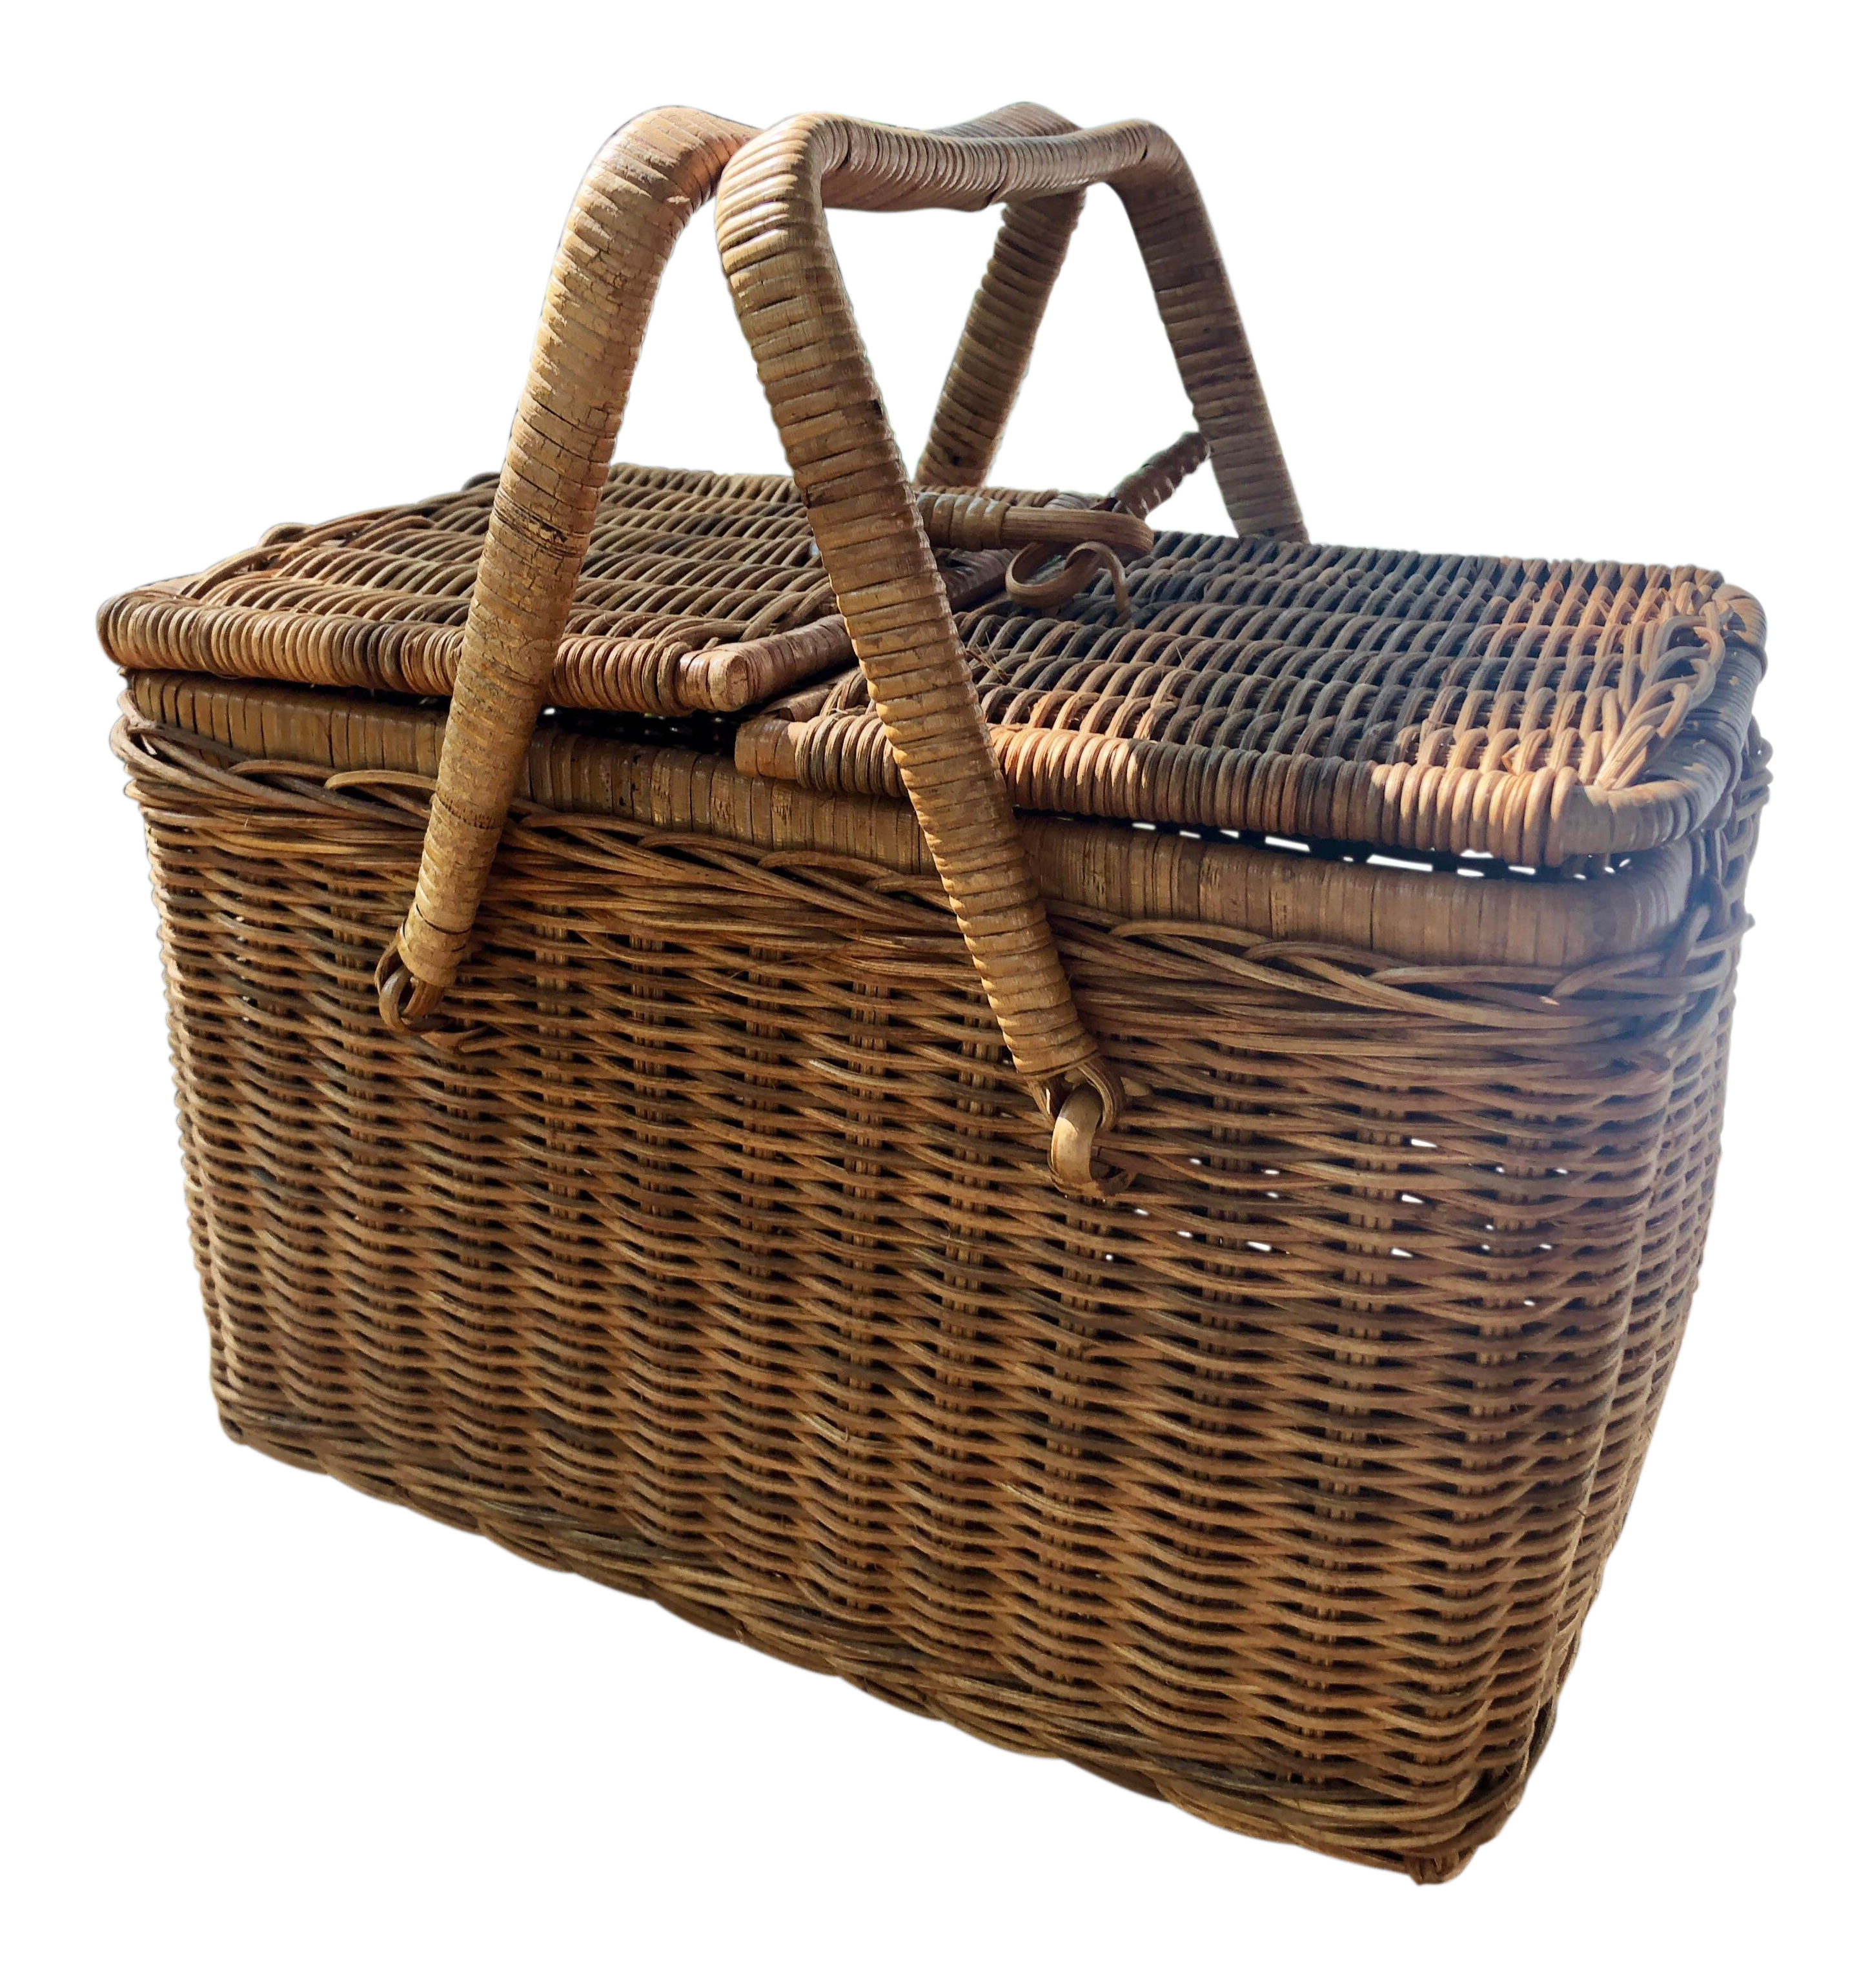 Vintage New Picnic Baskets For Sale Chairish